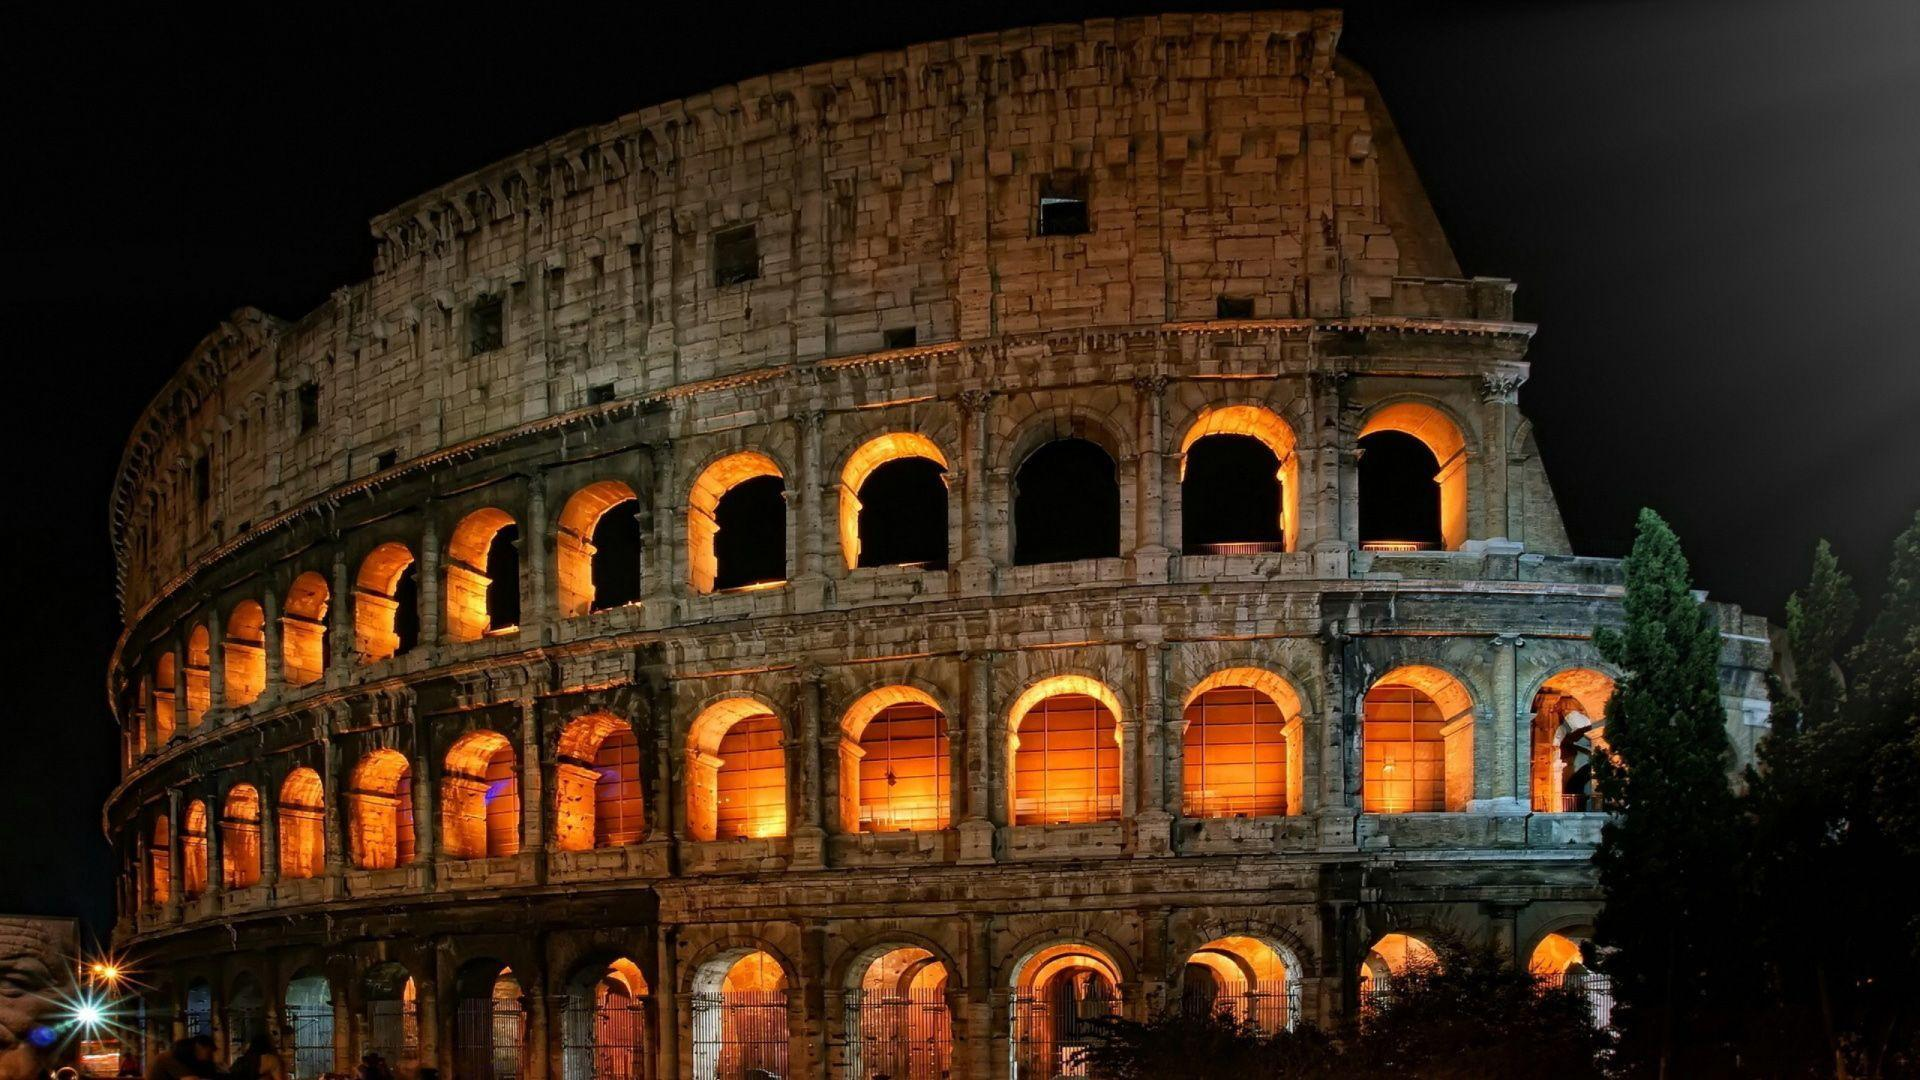 As Roma Wallpaper Background PC 2013 #7029251